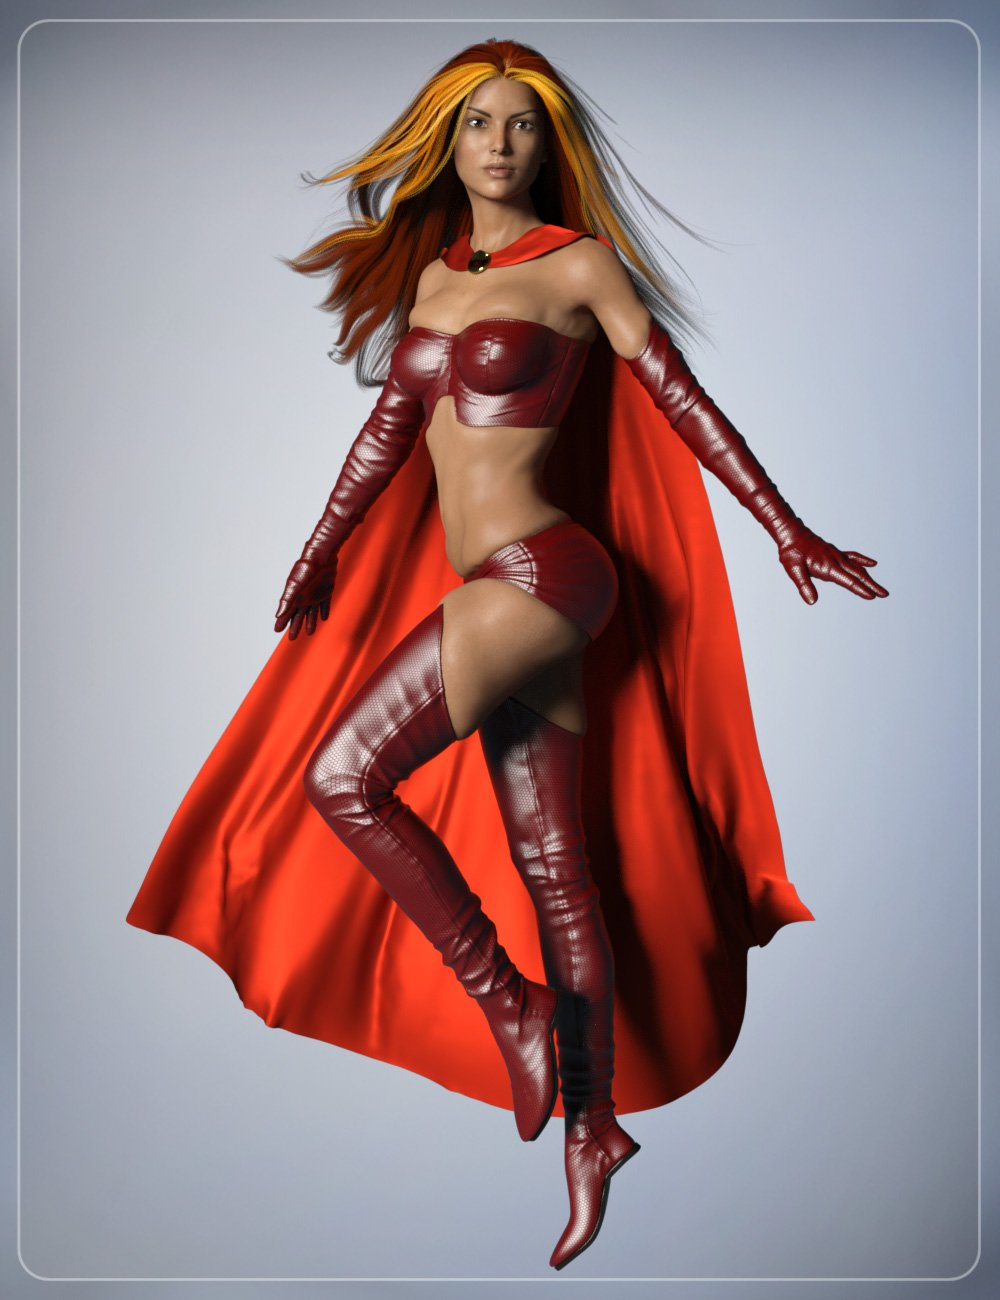 Super Cloak and Superhero Poses for Genesis 3 Female(s) by: smay, 3D Models by Daz 3D